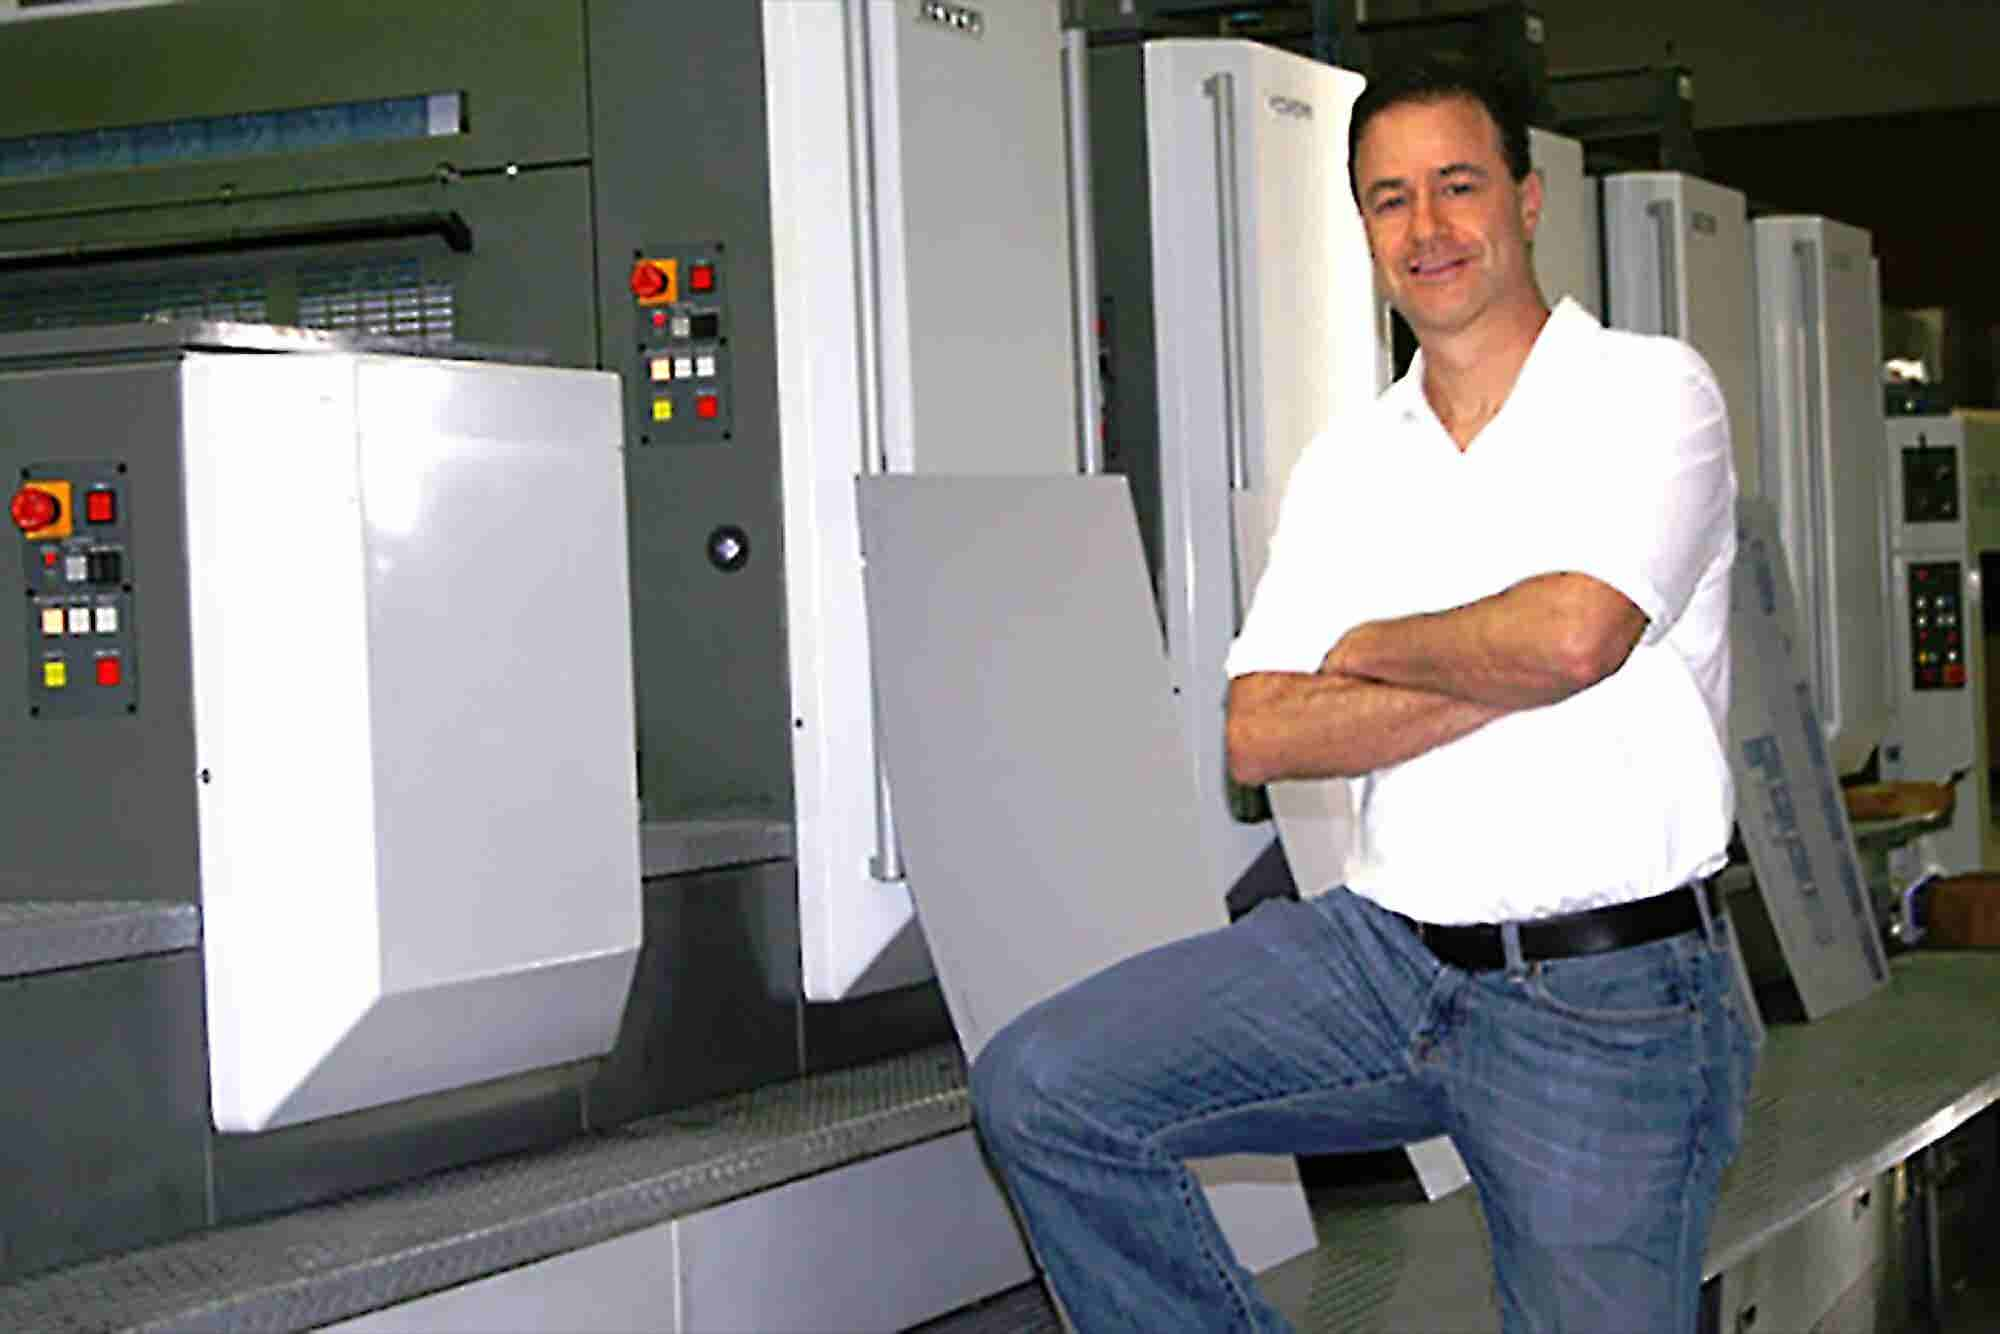 Manufacturer Thinks 'Lean' to Cut Waste, Boost Efficiency